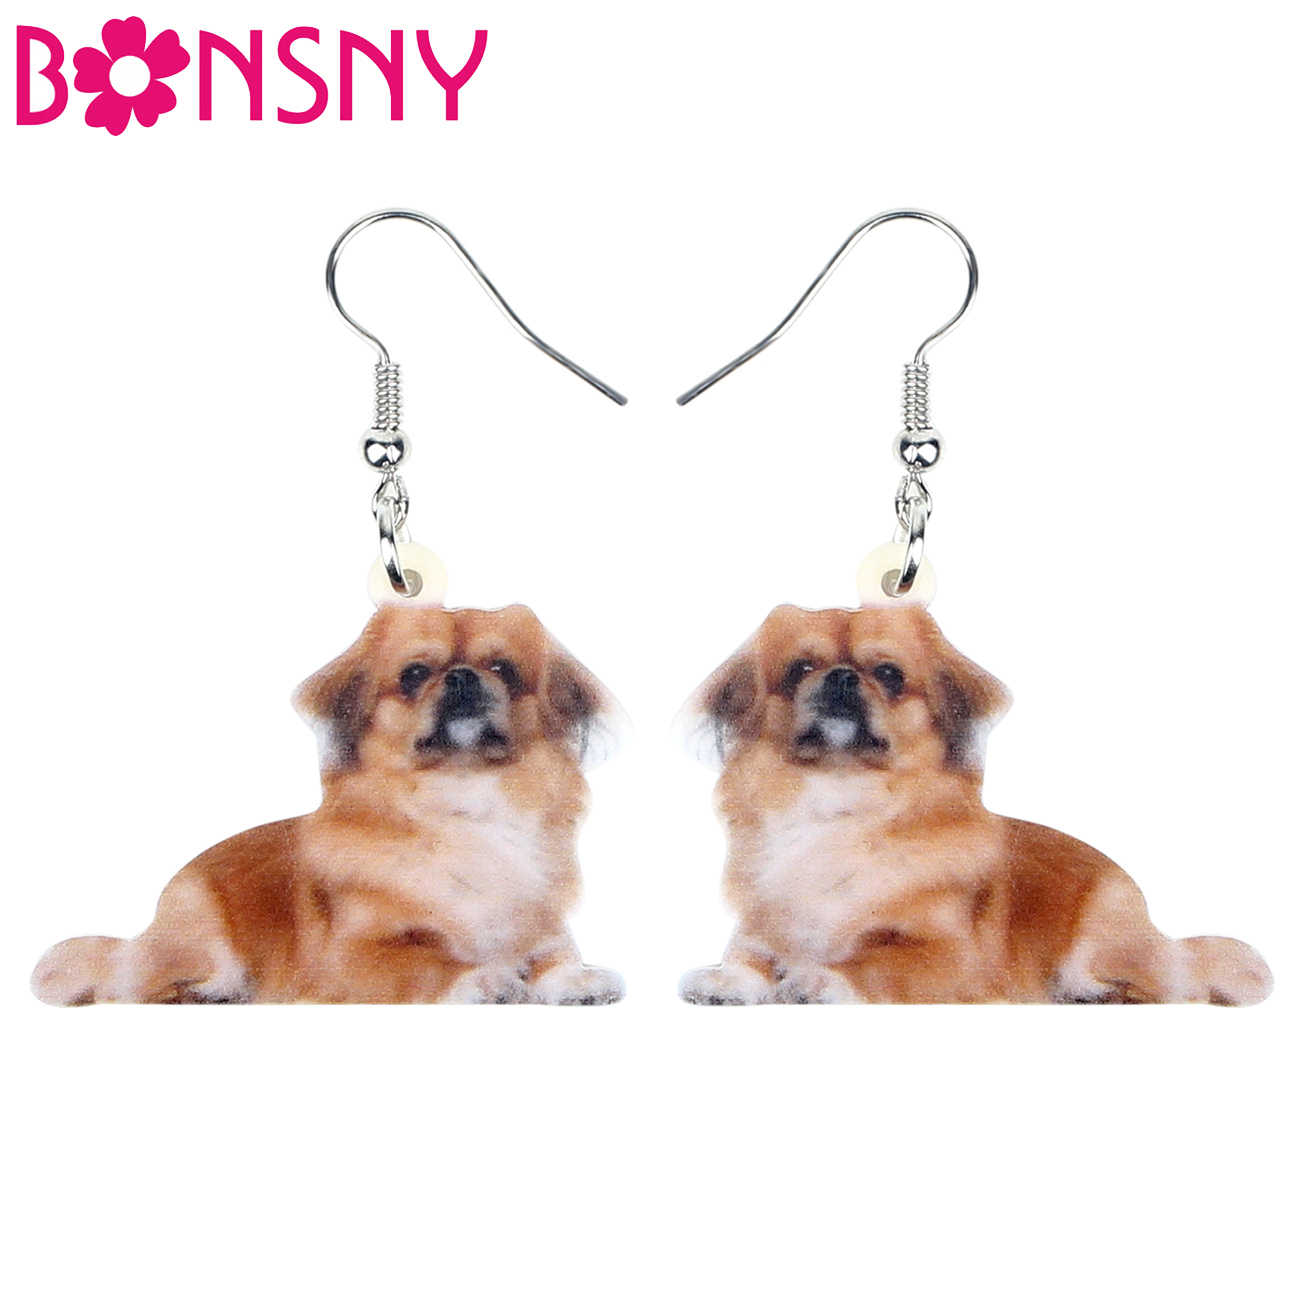 Bonsny Statement Acrylic Japanese Chin Dog Earrings Drop Dangle Cute Animal Jewelry For Women Girls Gift Charms Accessories 2019